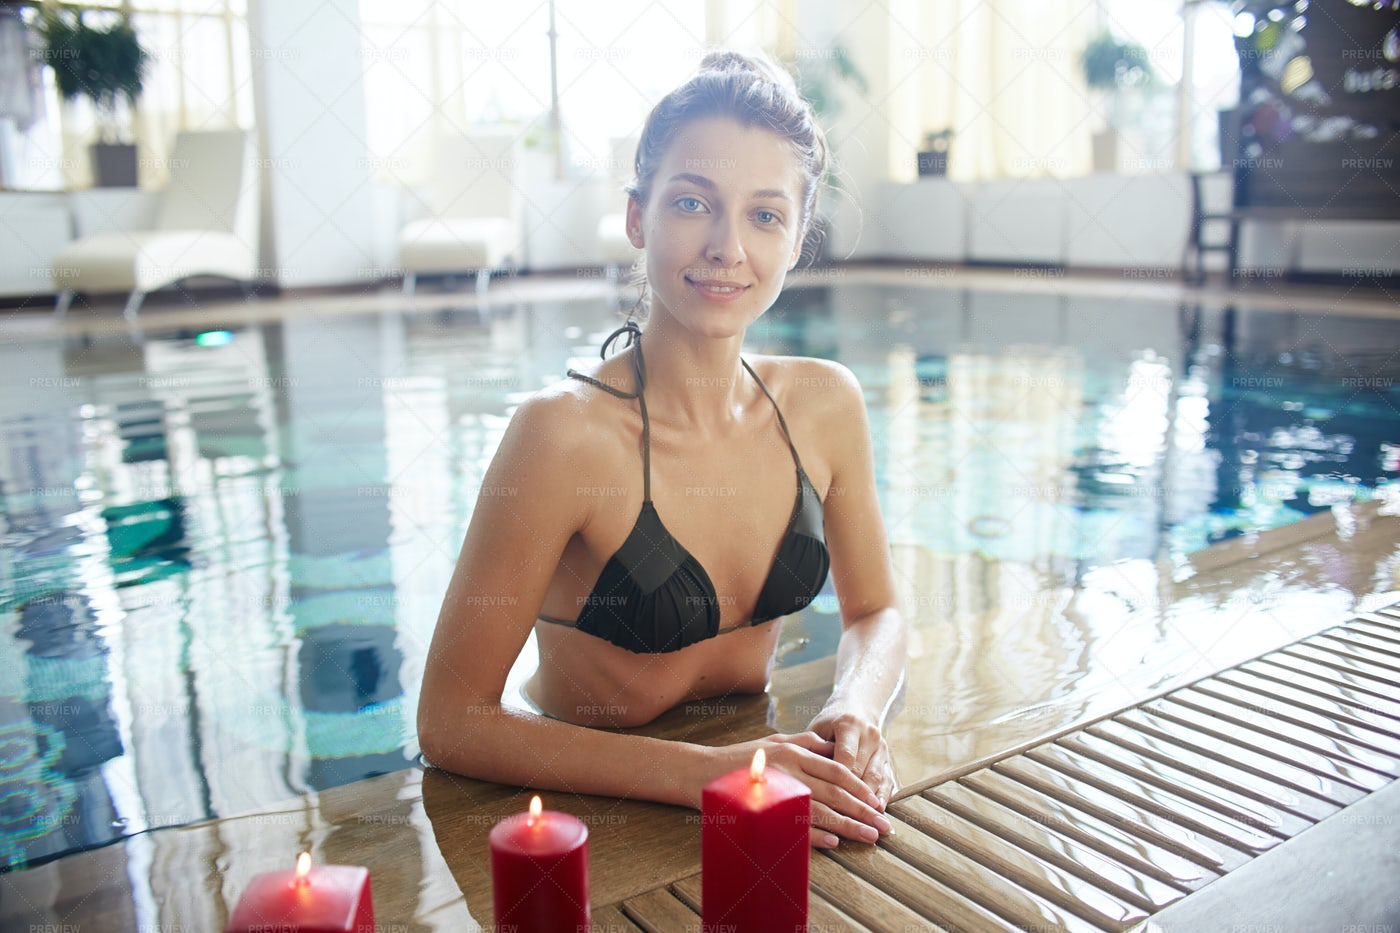 Smiling Woman In Swimming Pool: Stock Photos